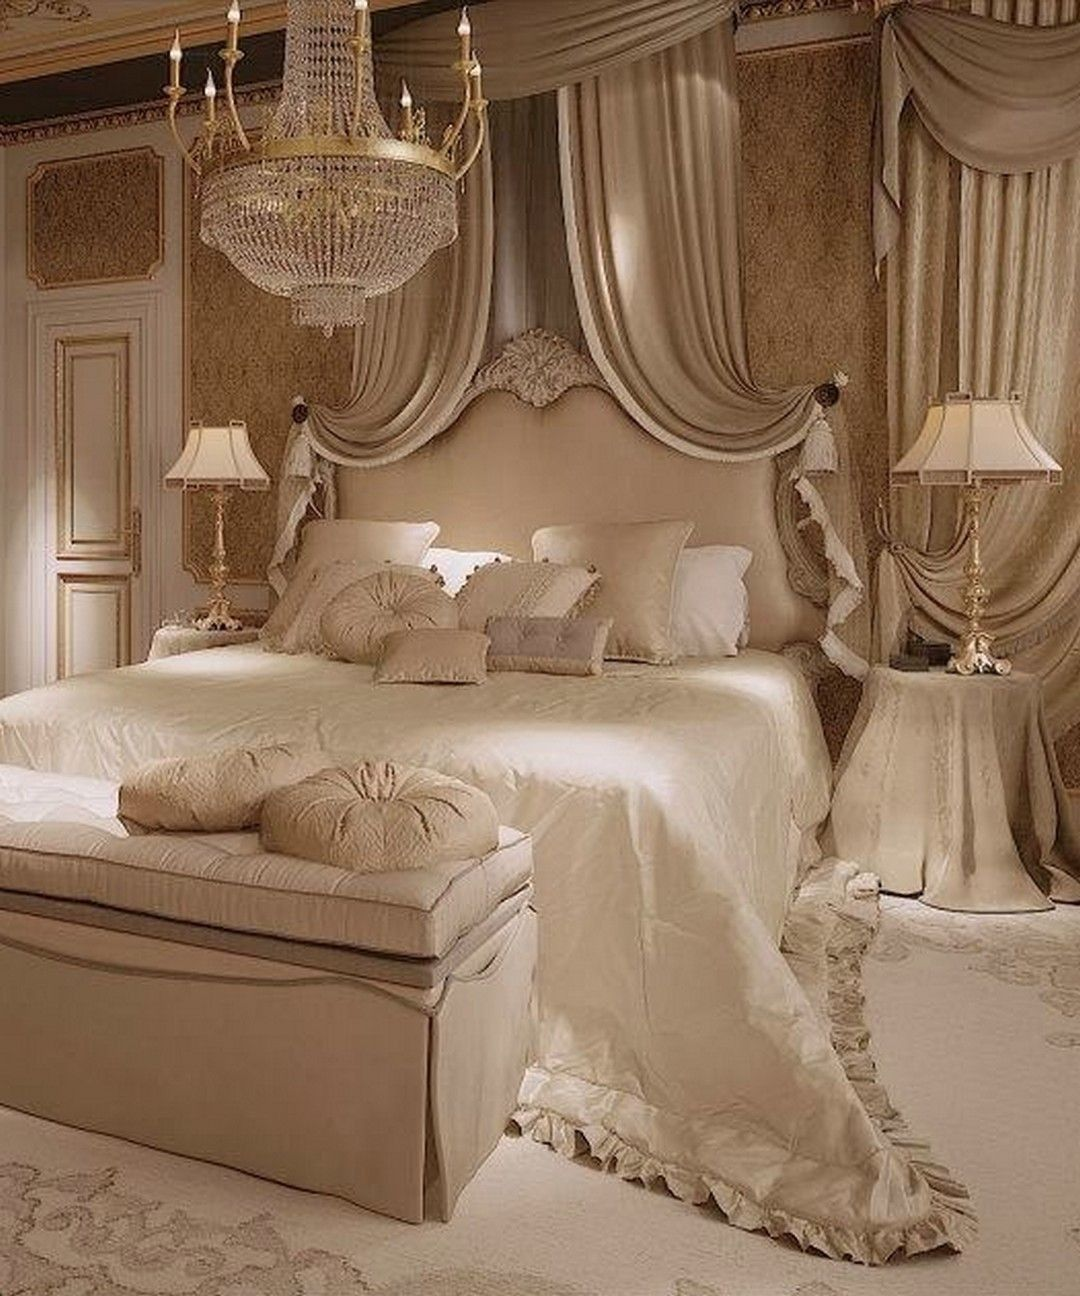 Best Ideas to Make Your Bedroom Extra Cozy and Romantic